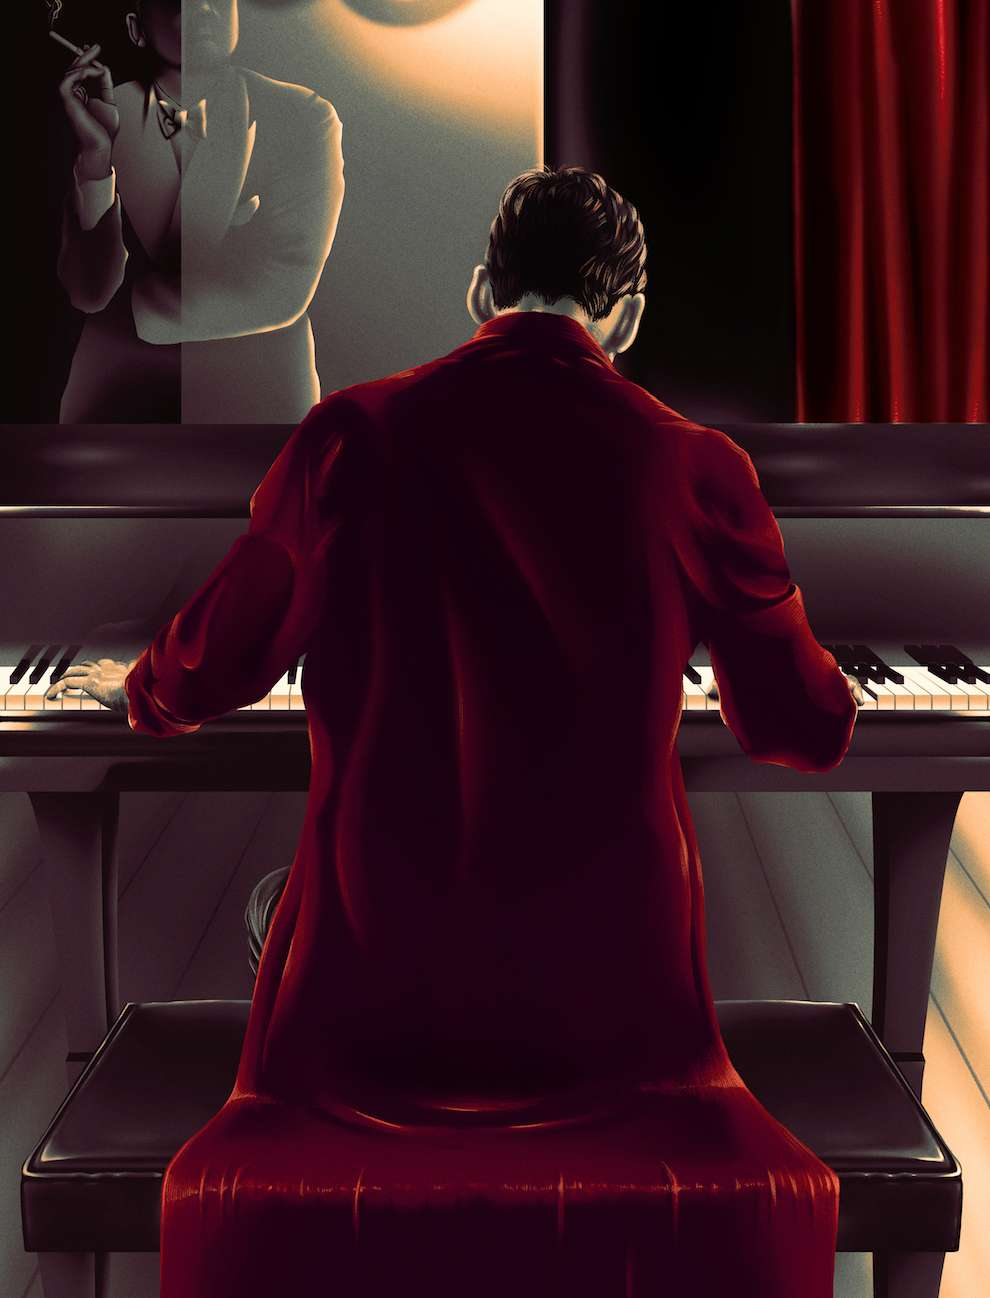 Doaly, Digital painterly illustration of a man playing piano